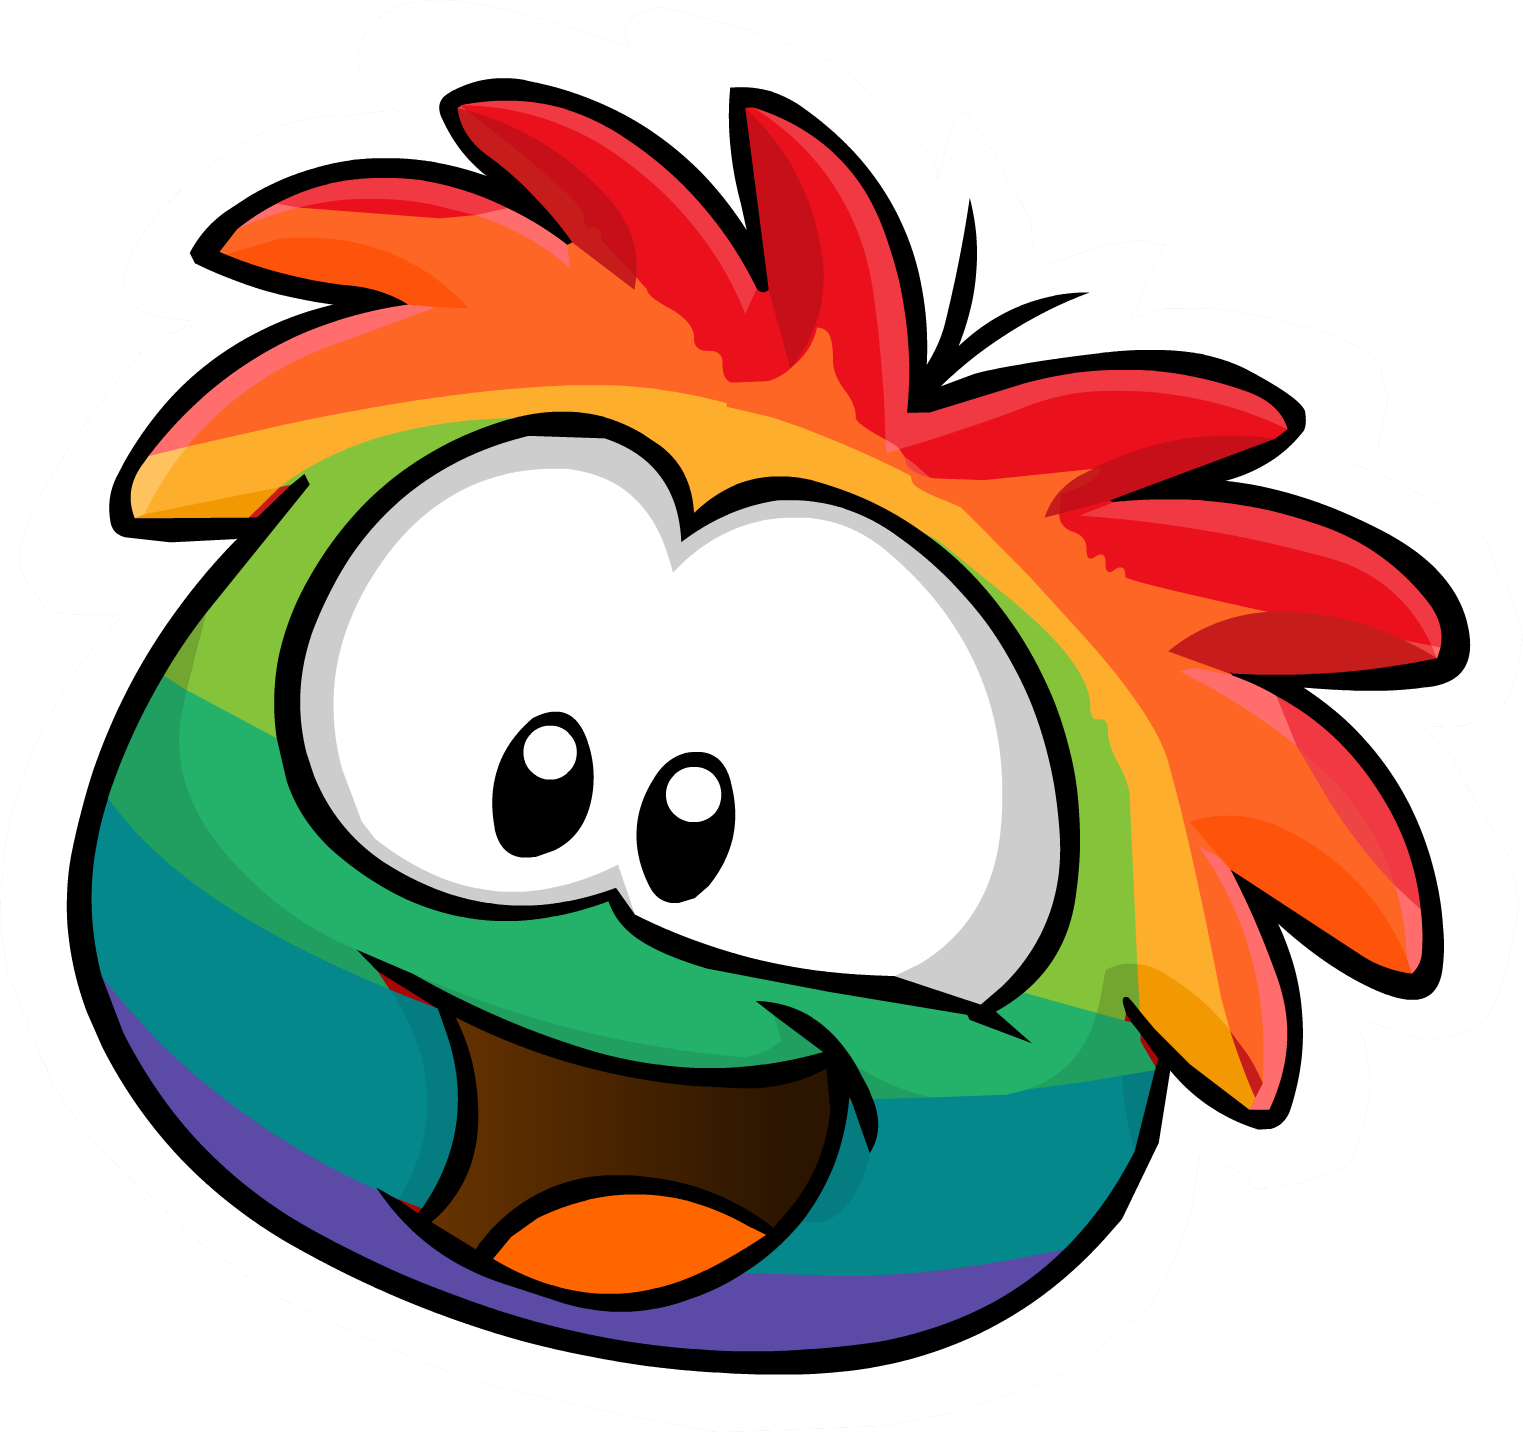 Pictures of all the puffles Puffle Picture (disambiguation) Club Penguin Wiki FANDOM